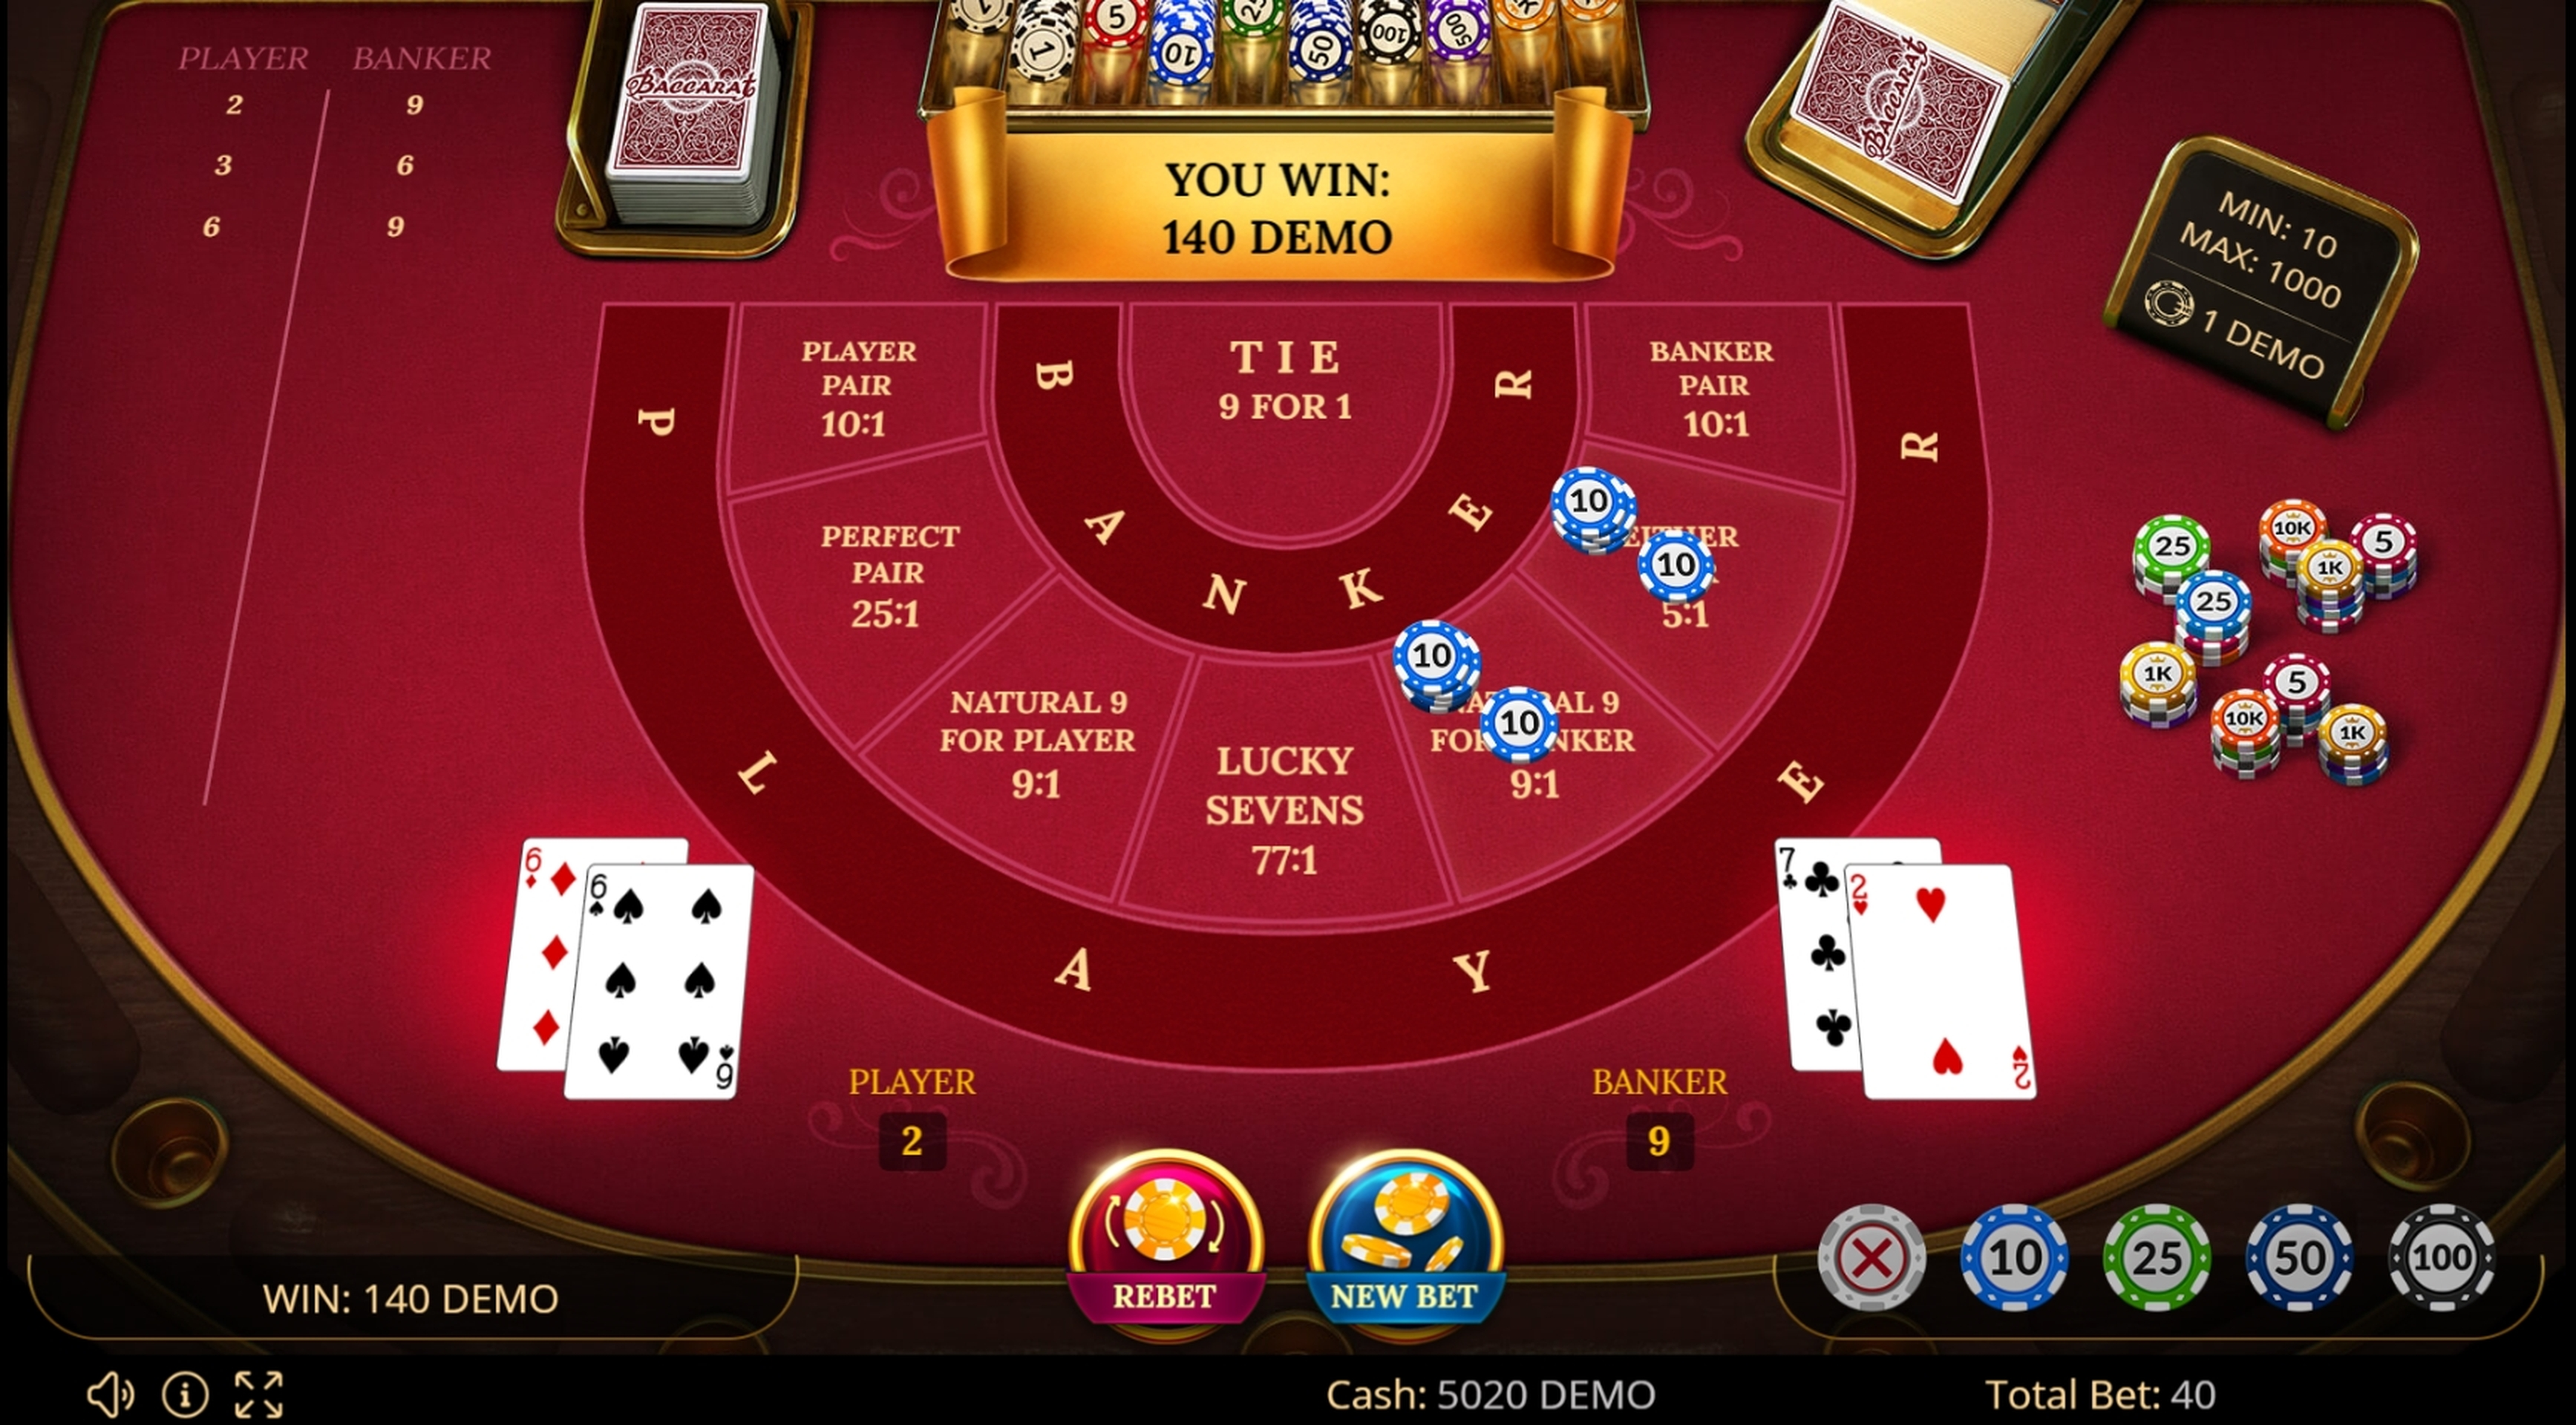 Win Money in Baccarat 777 Free Slot Game by Evoplay Entertainment